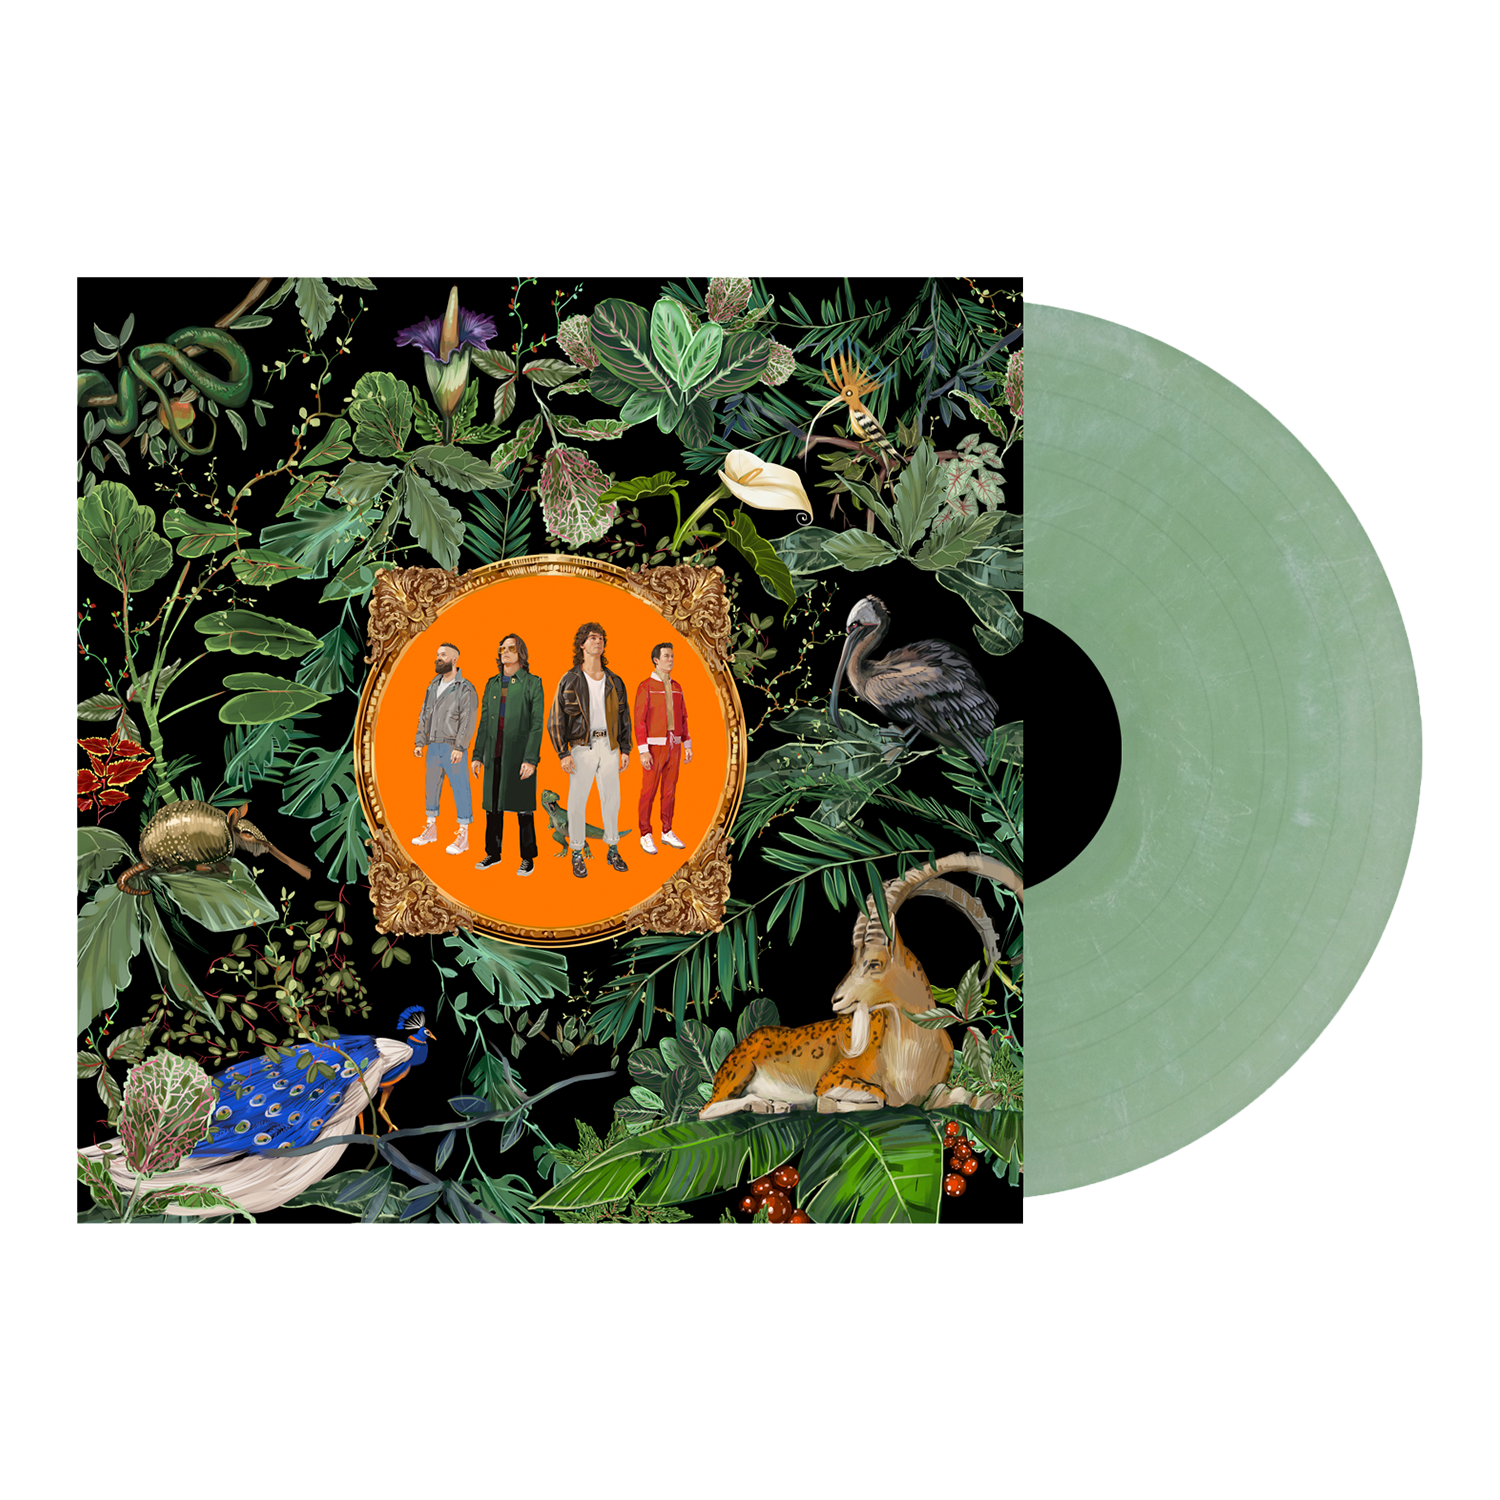 Don Broco - 'Amazing Things' Green Marble Vinyl Pre-Order